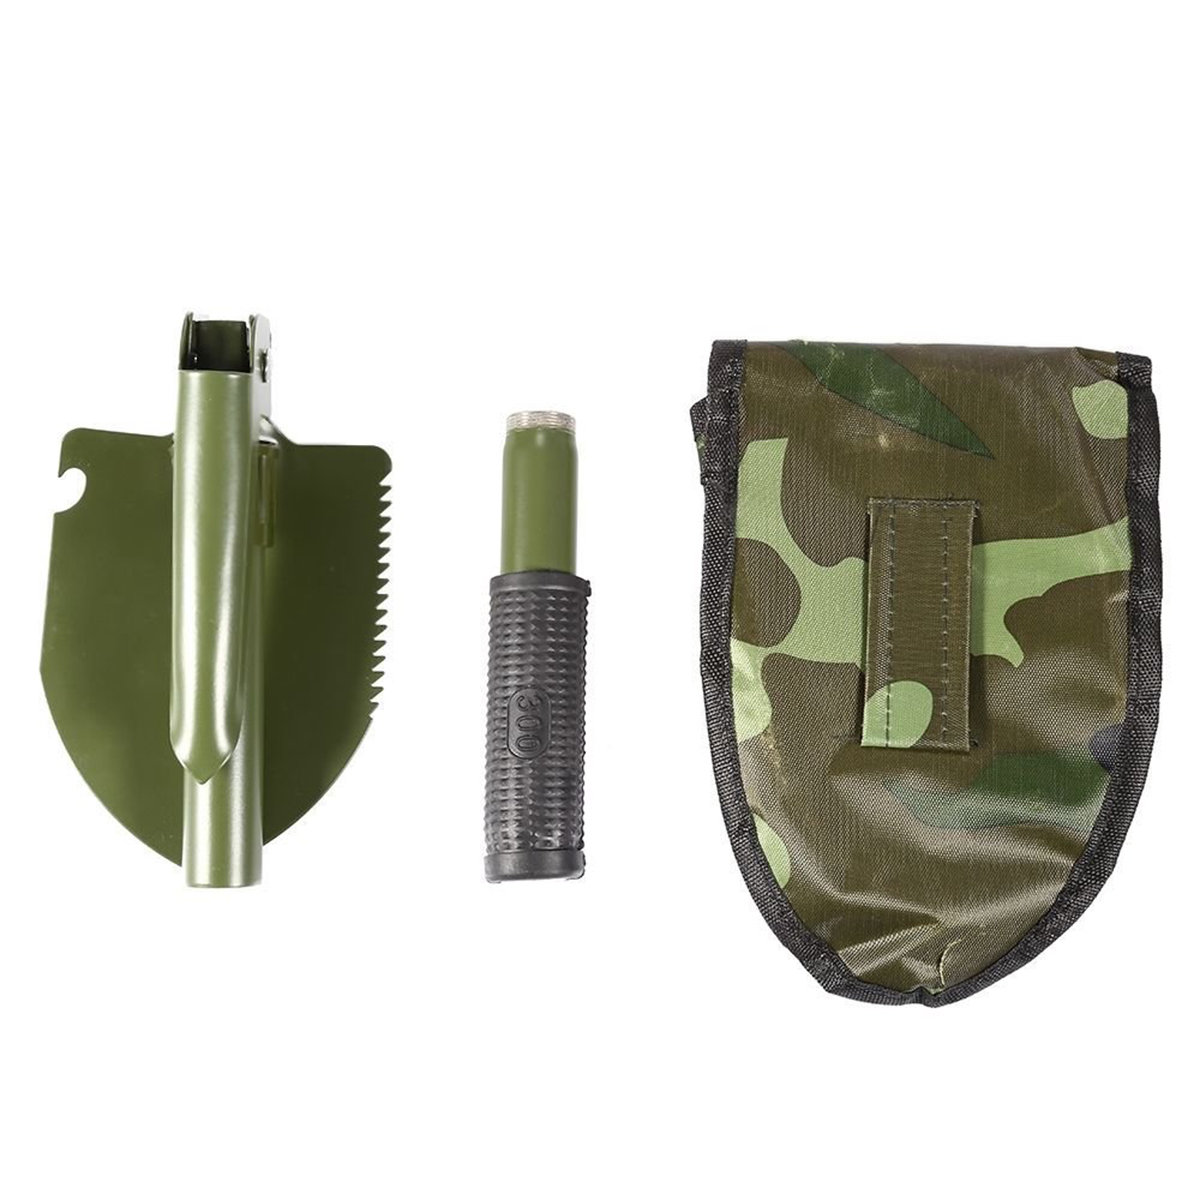 Camping Shovels Portable Folding Military Shovel with Compass Outdoor Survival Emergency Tool